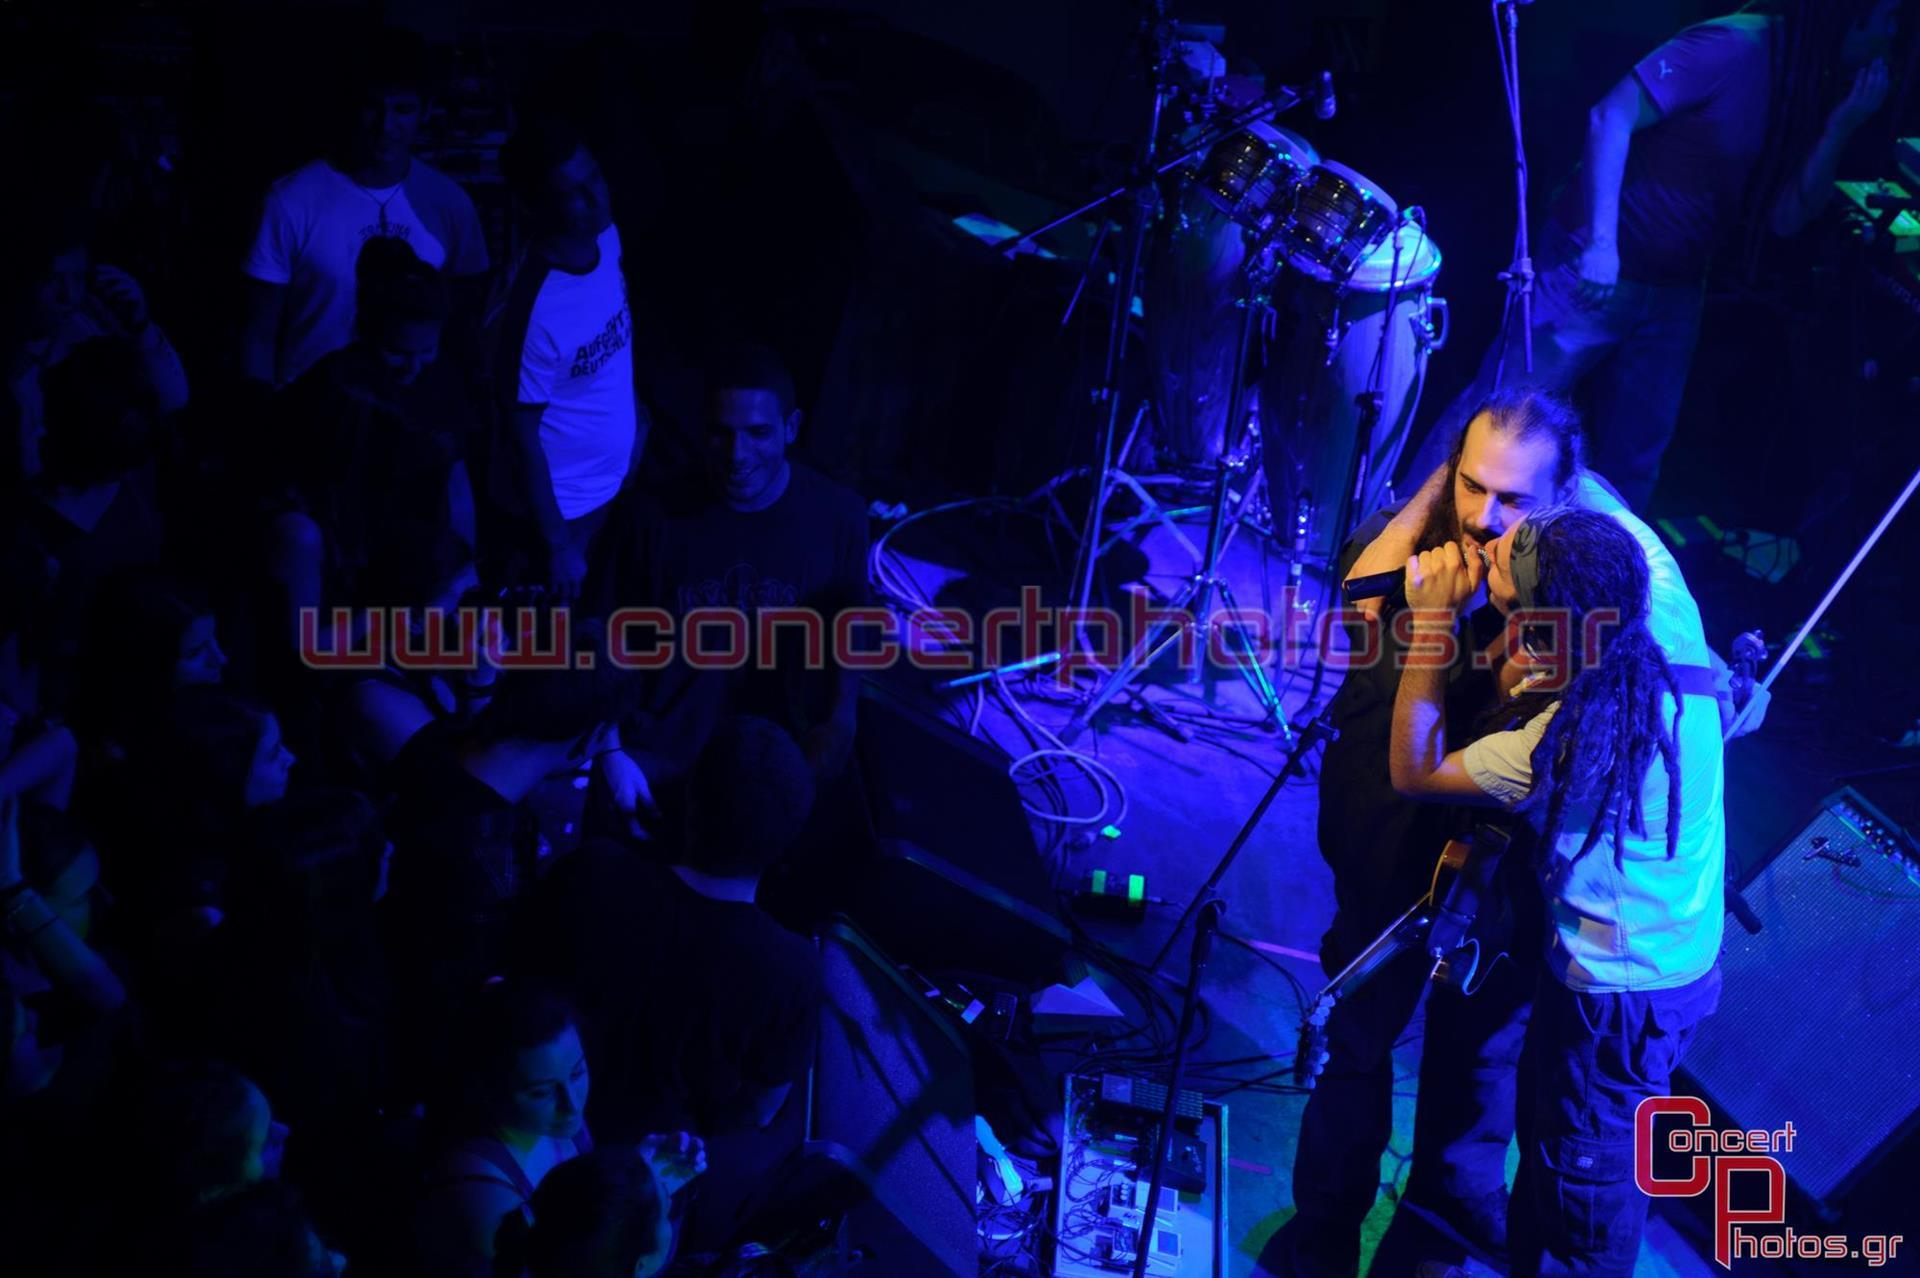 Locomondo- photographer:  - ConcertPhotos-7054